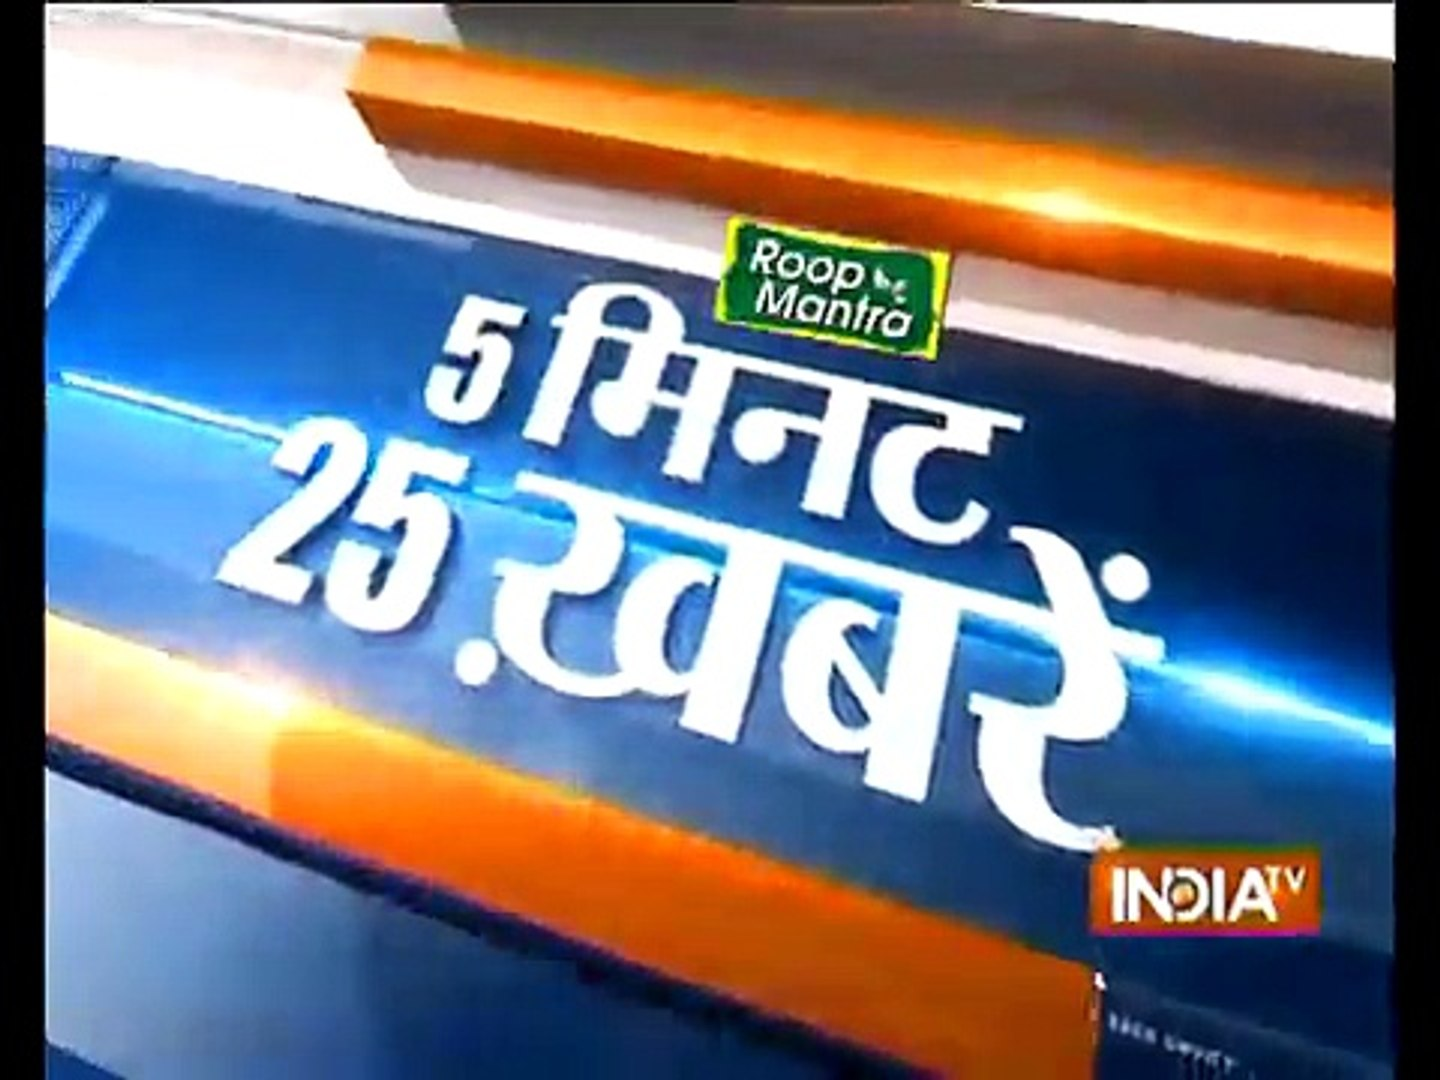 India TV News : Ankhein Kholo India | December 13, 2015